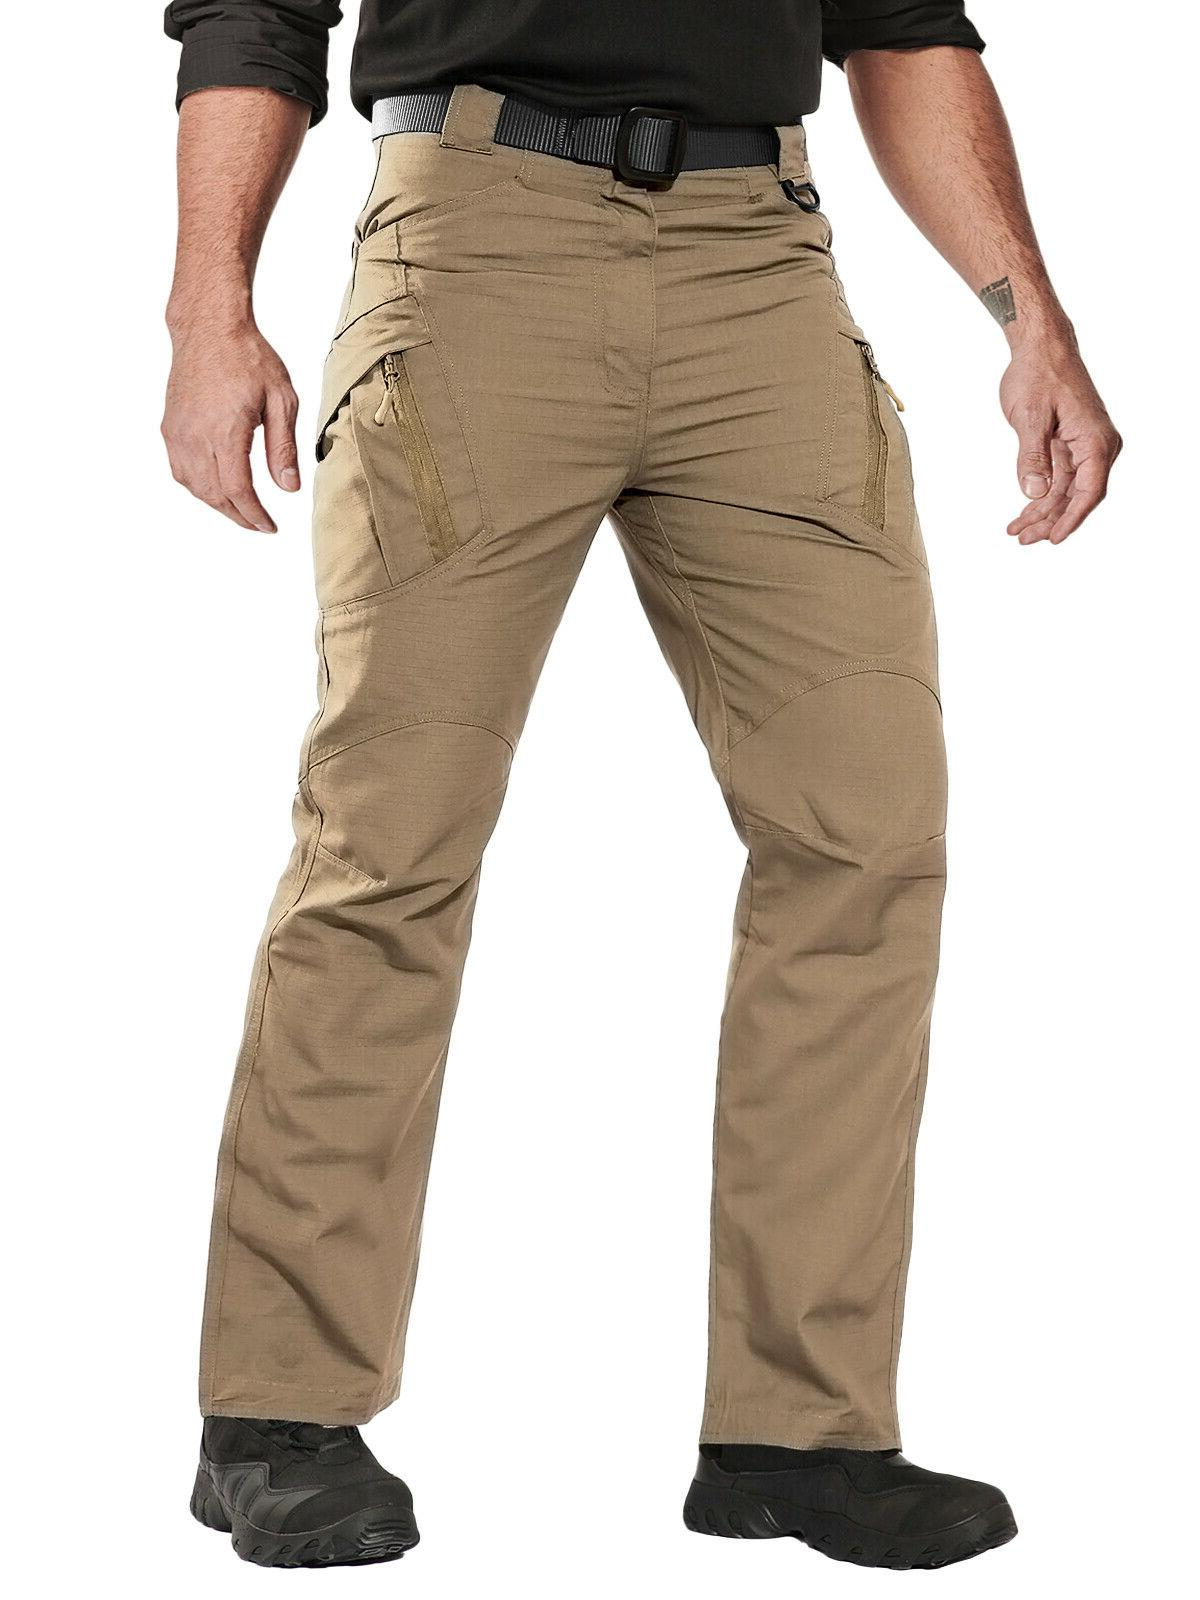 Zip Pockets Mens Tactical Cargo Workout Rip-stop UTP